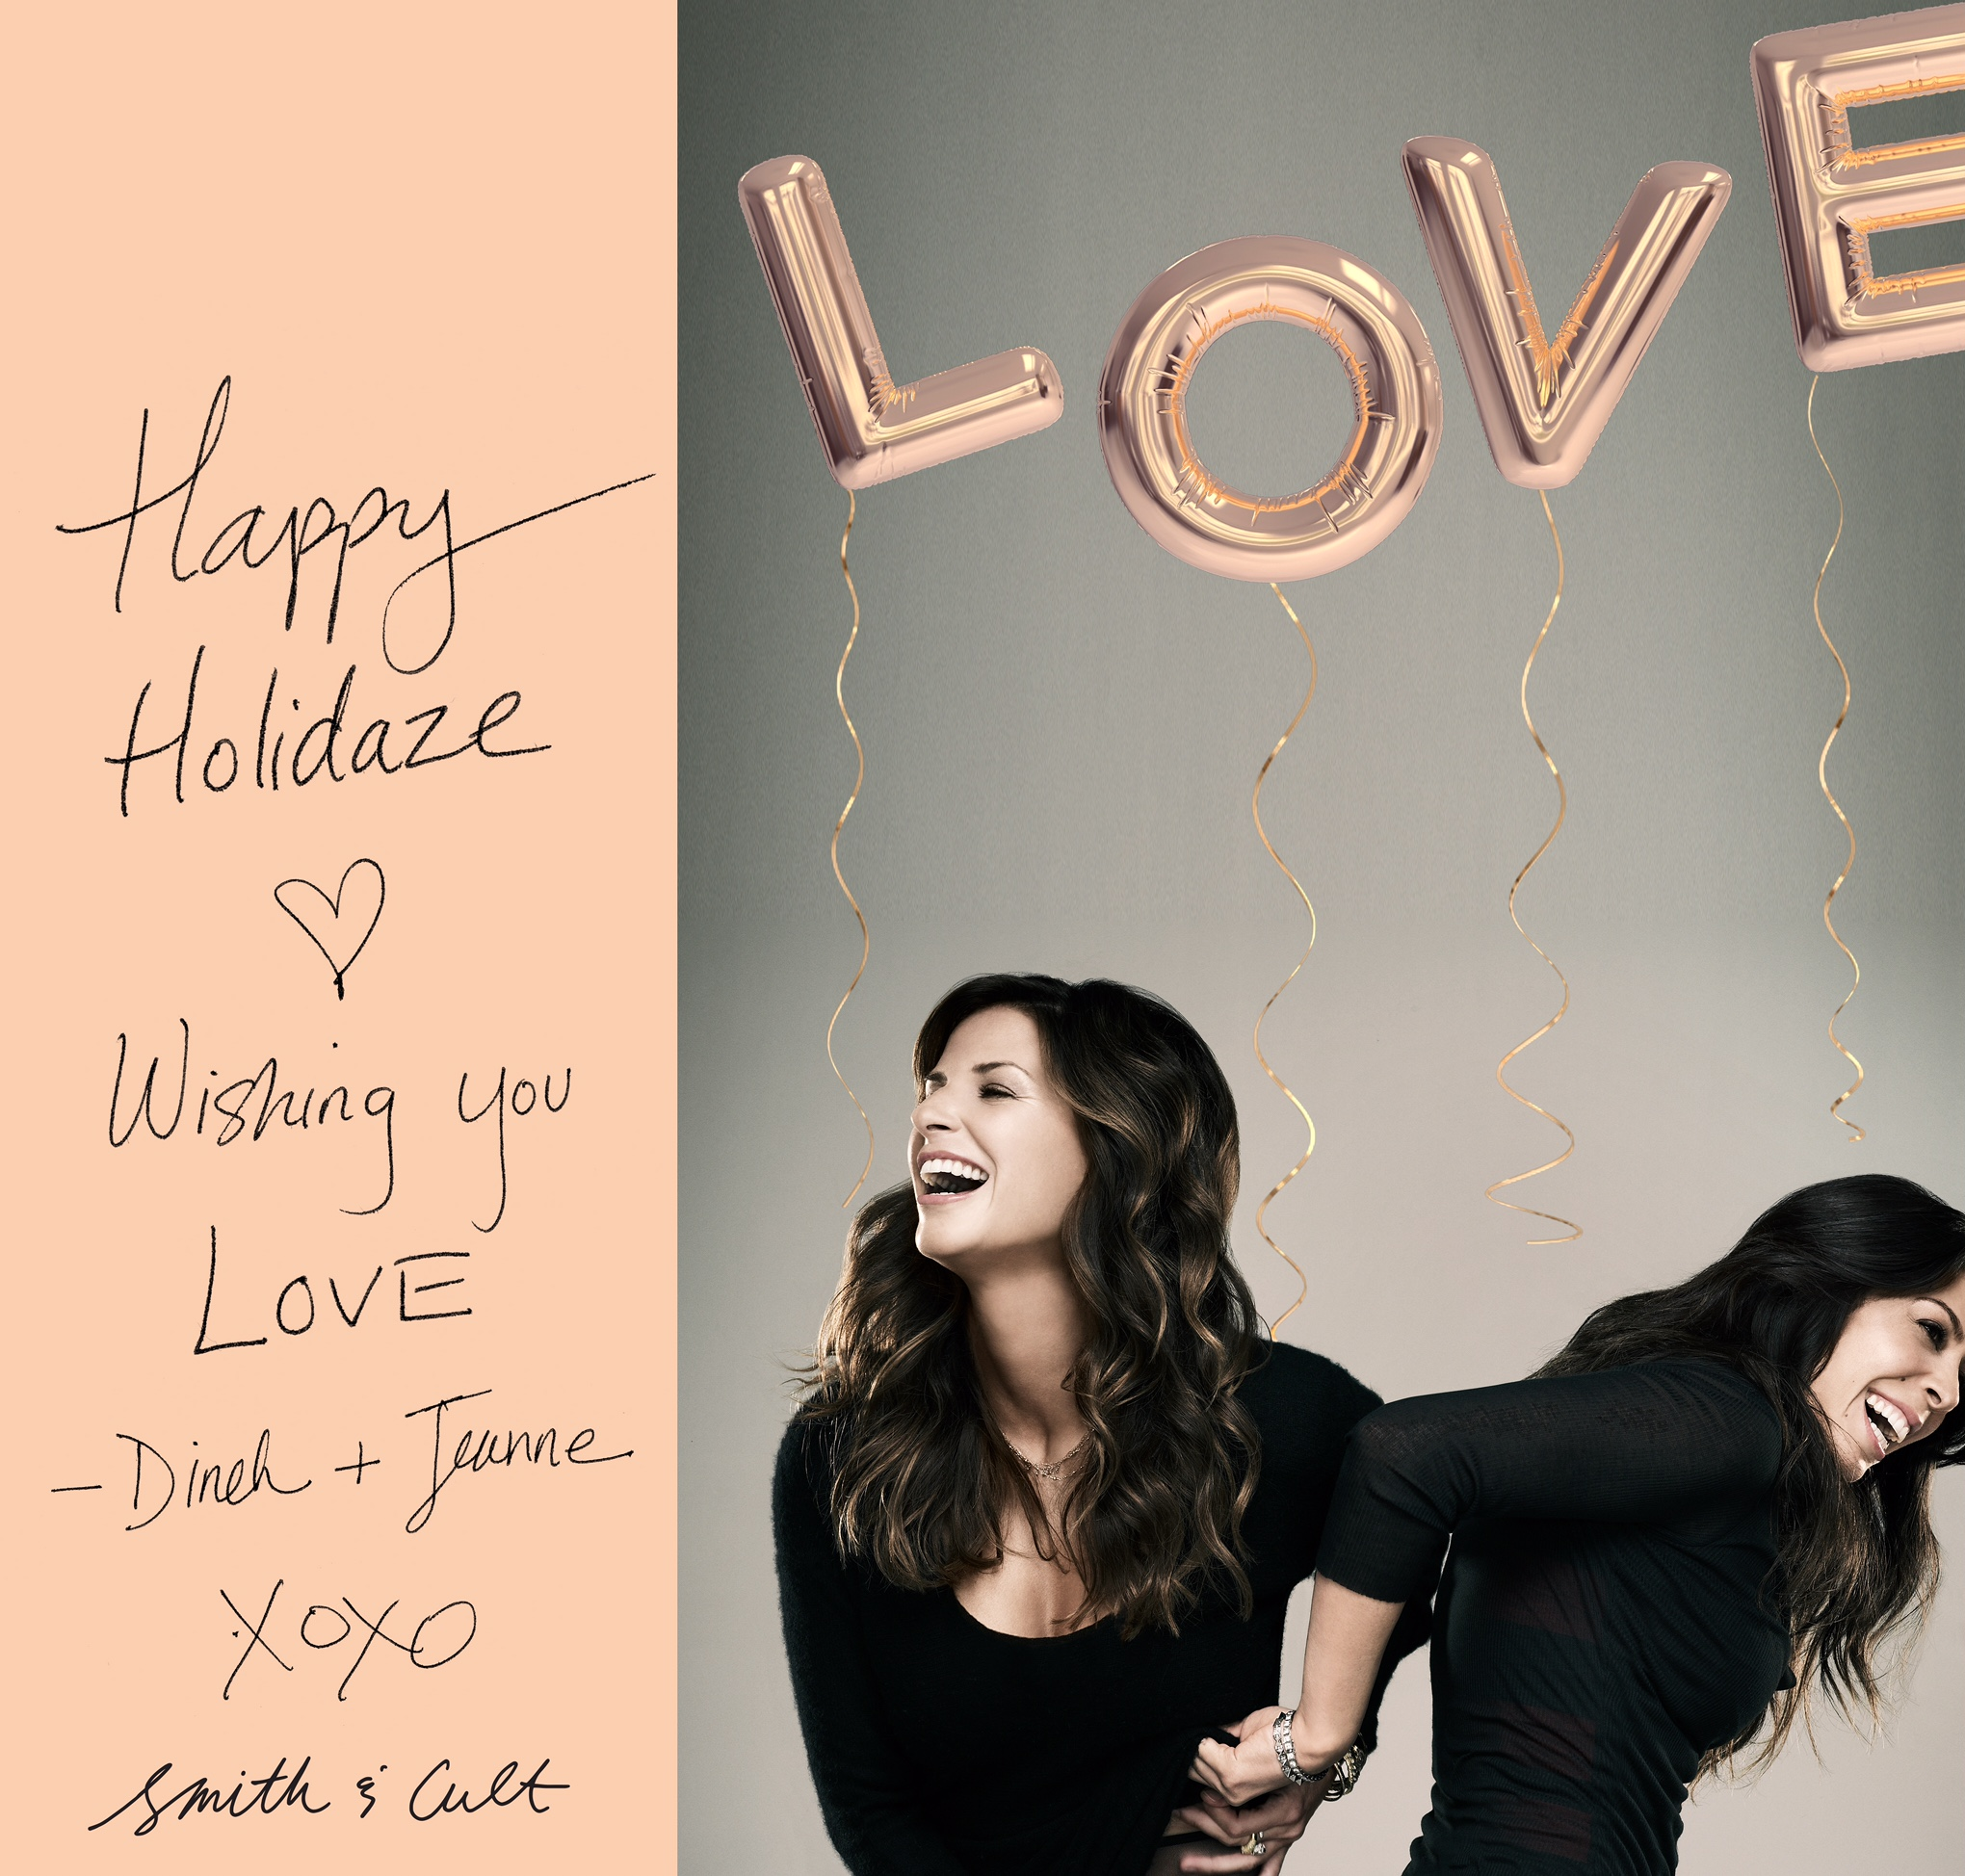 Jeanne & Dineh_Holiday Card 2016.jpg.jpeg